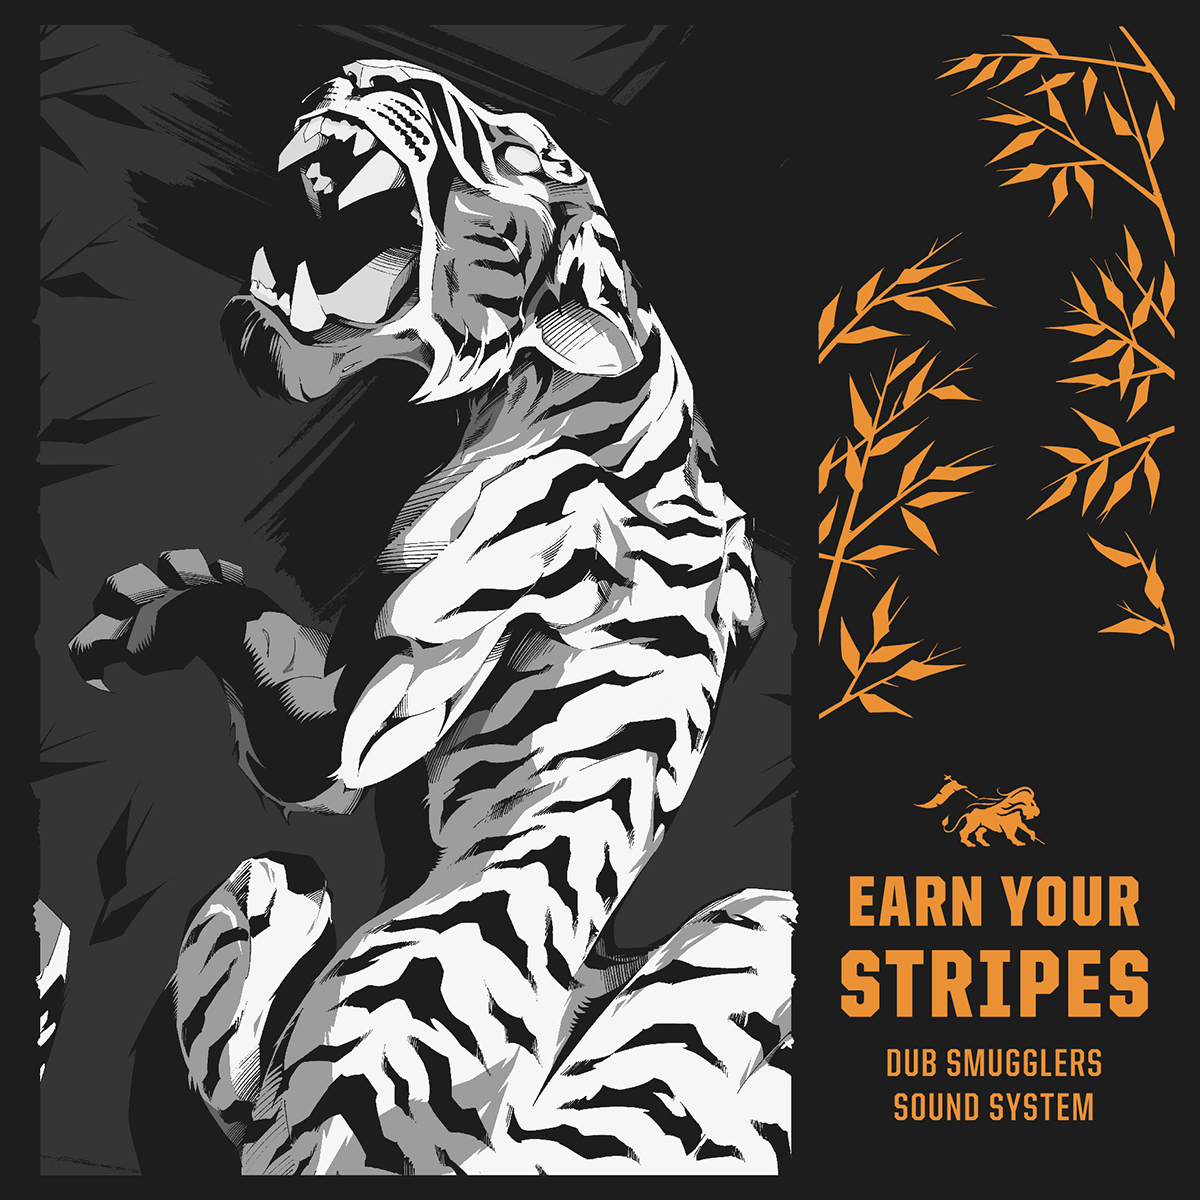 LP cover art featuring illustration of a roaring white tiger.